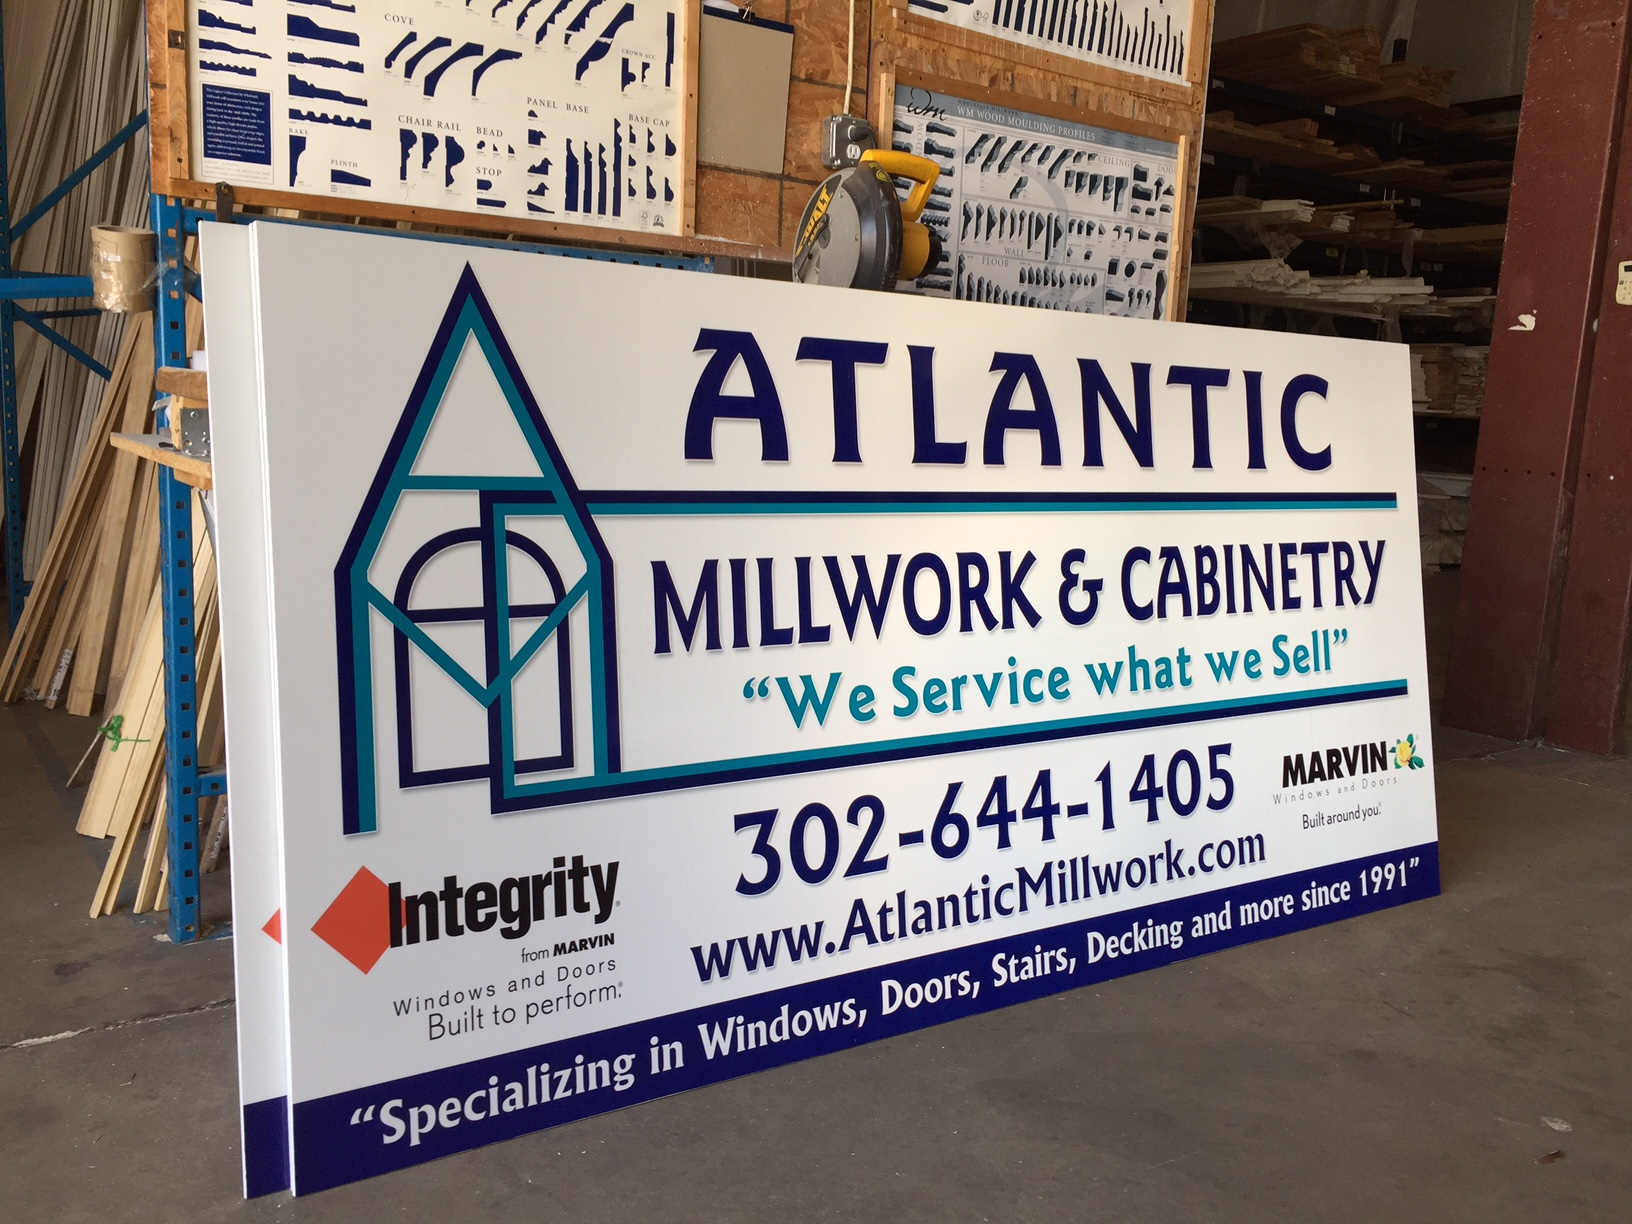 New reflective signs for Atlantic Millwork